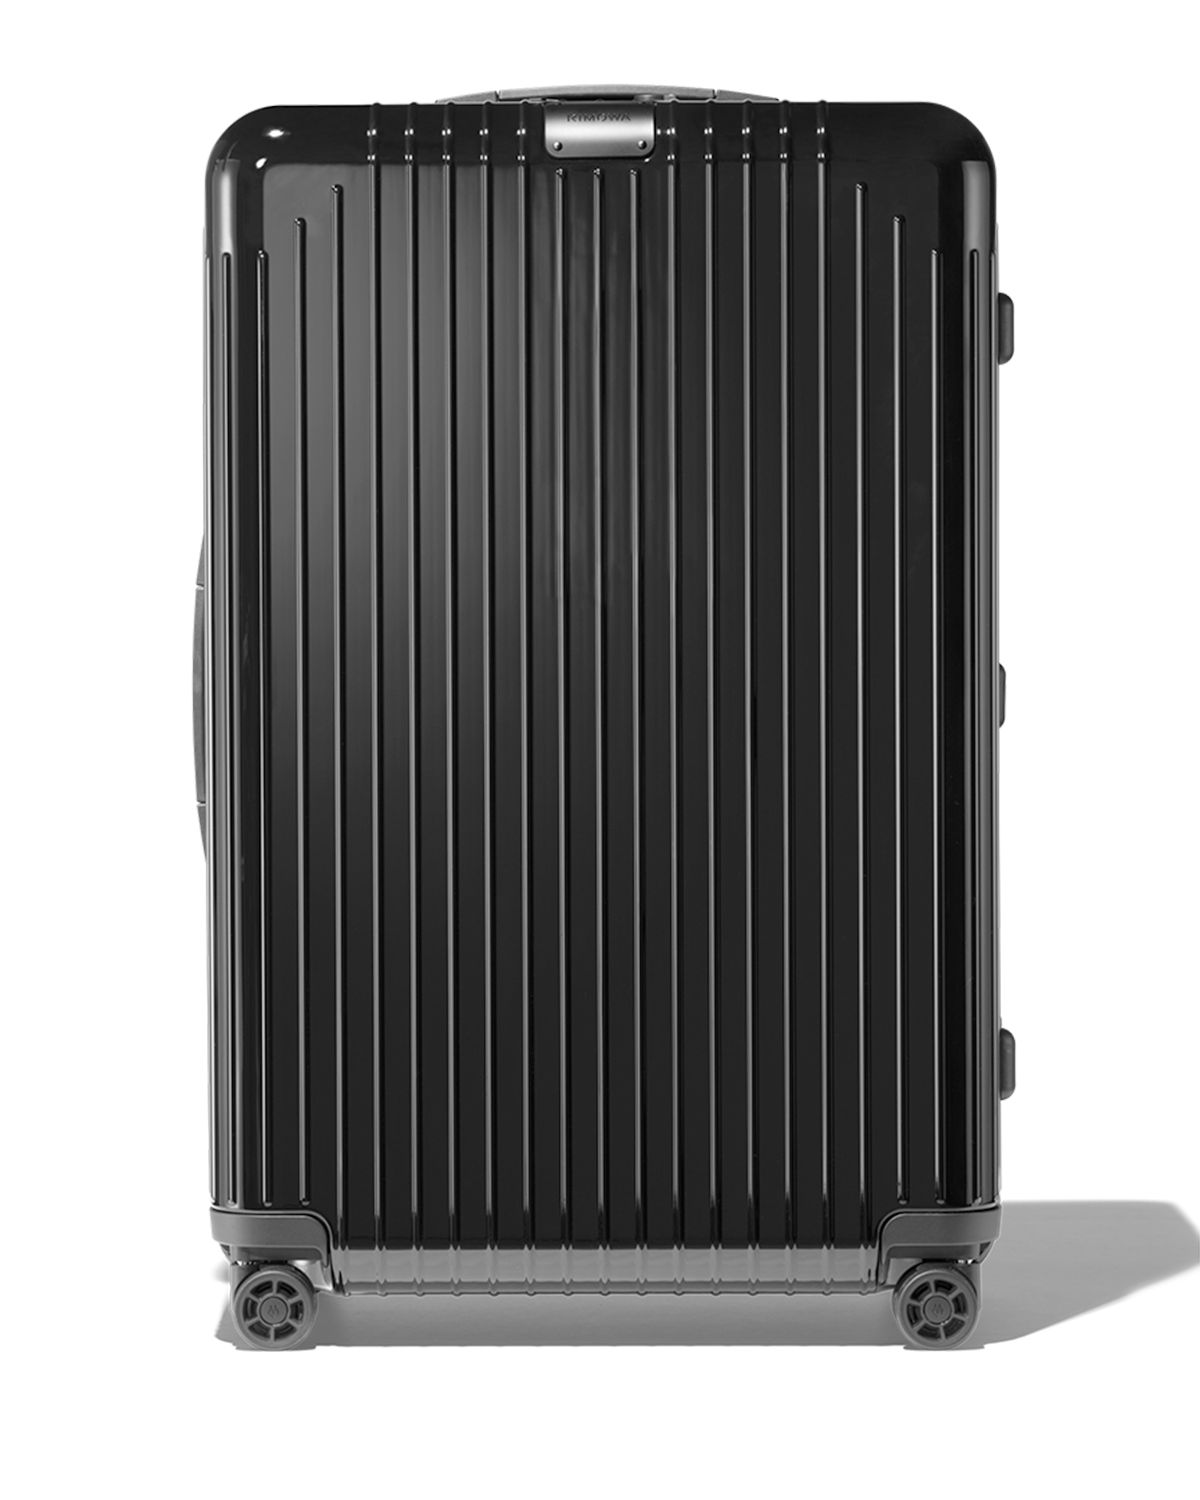 Rimowa Bags ESSENTIAL LITE CHECK-IN L SPINNER LUGGAGE